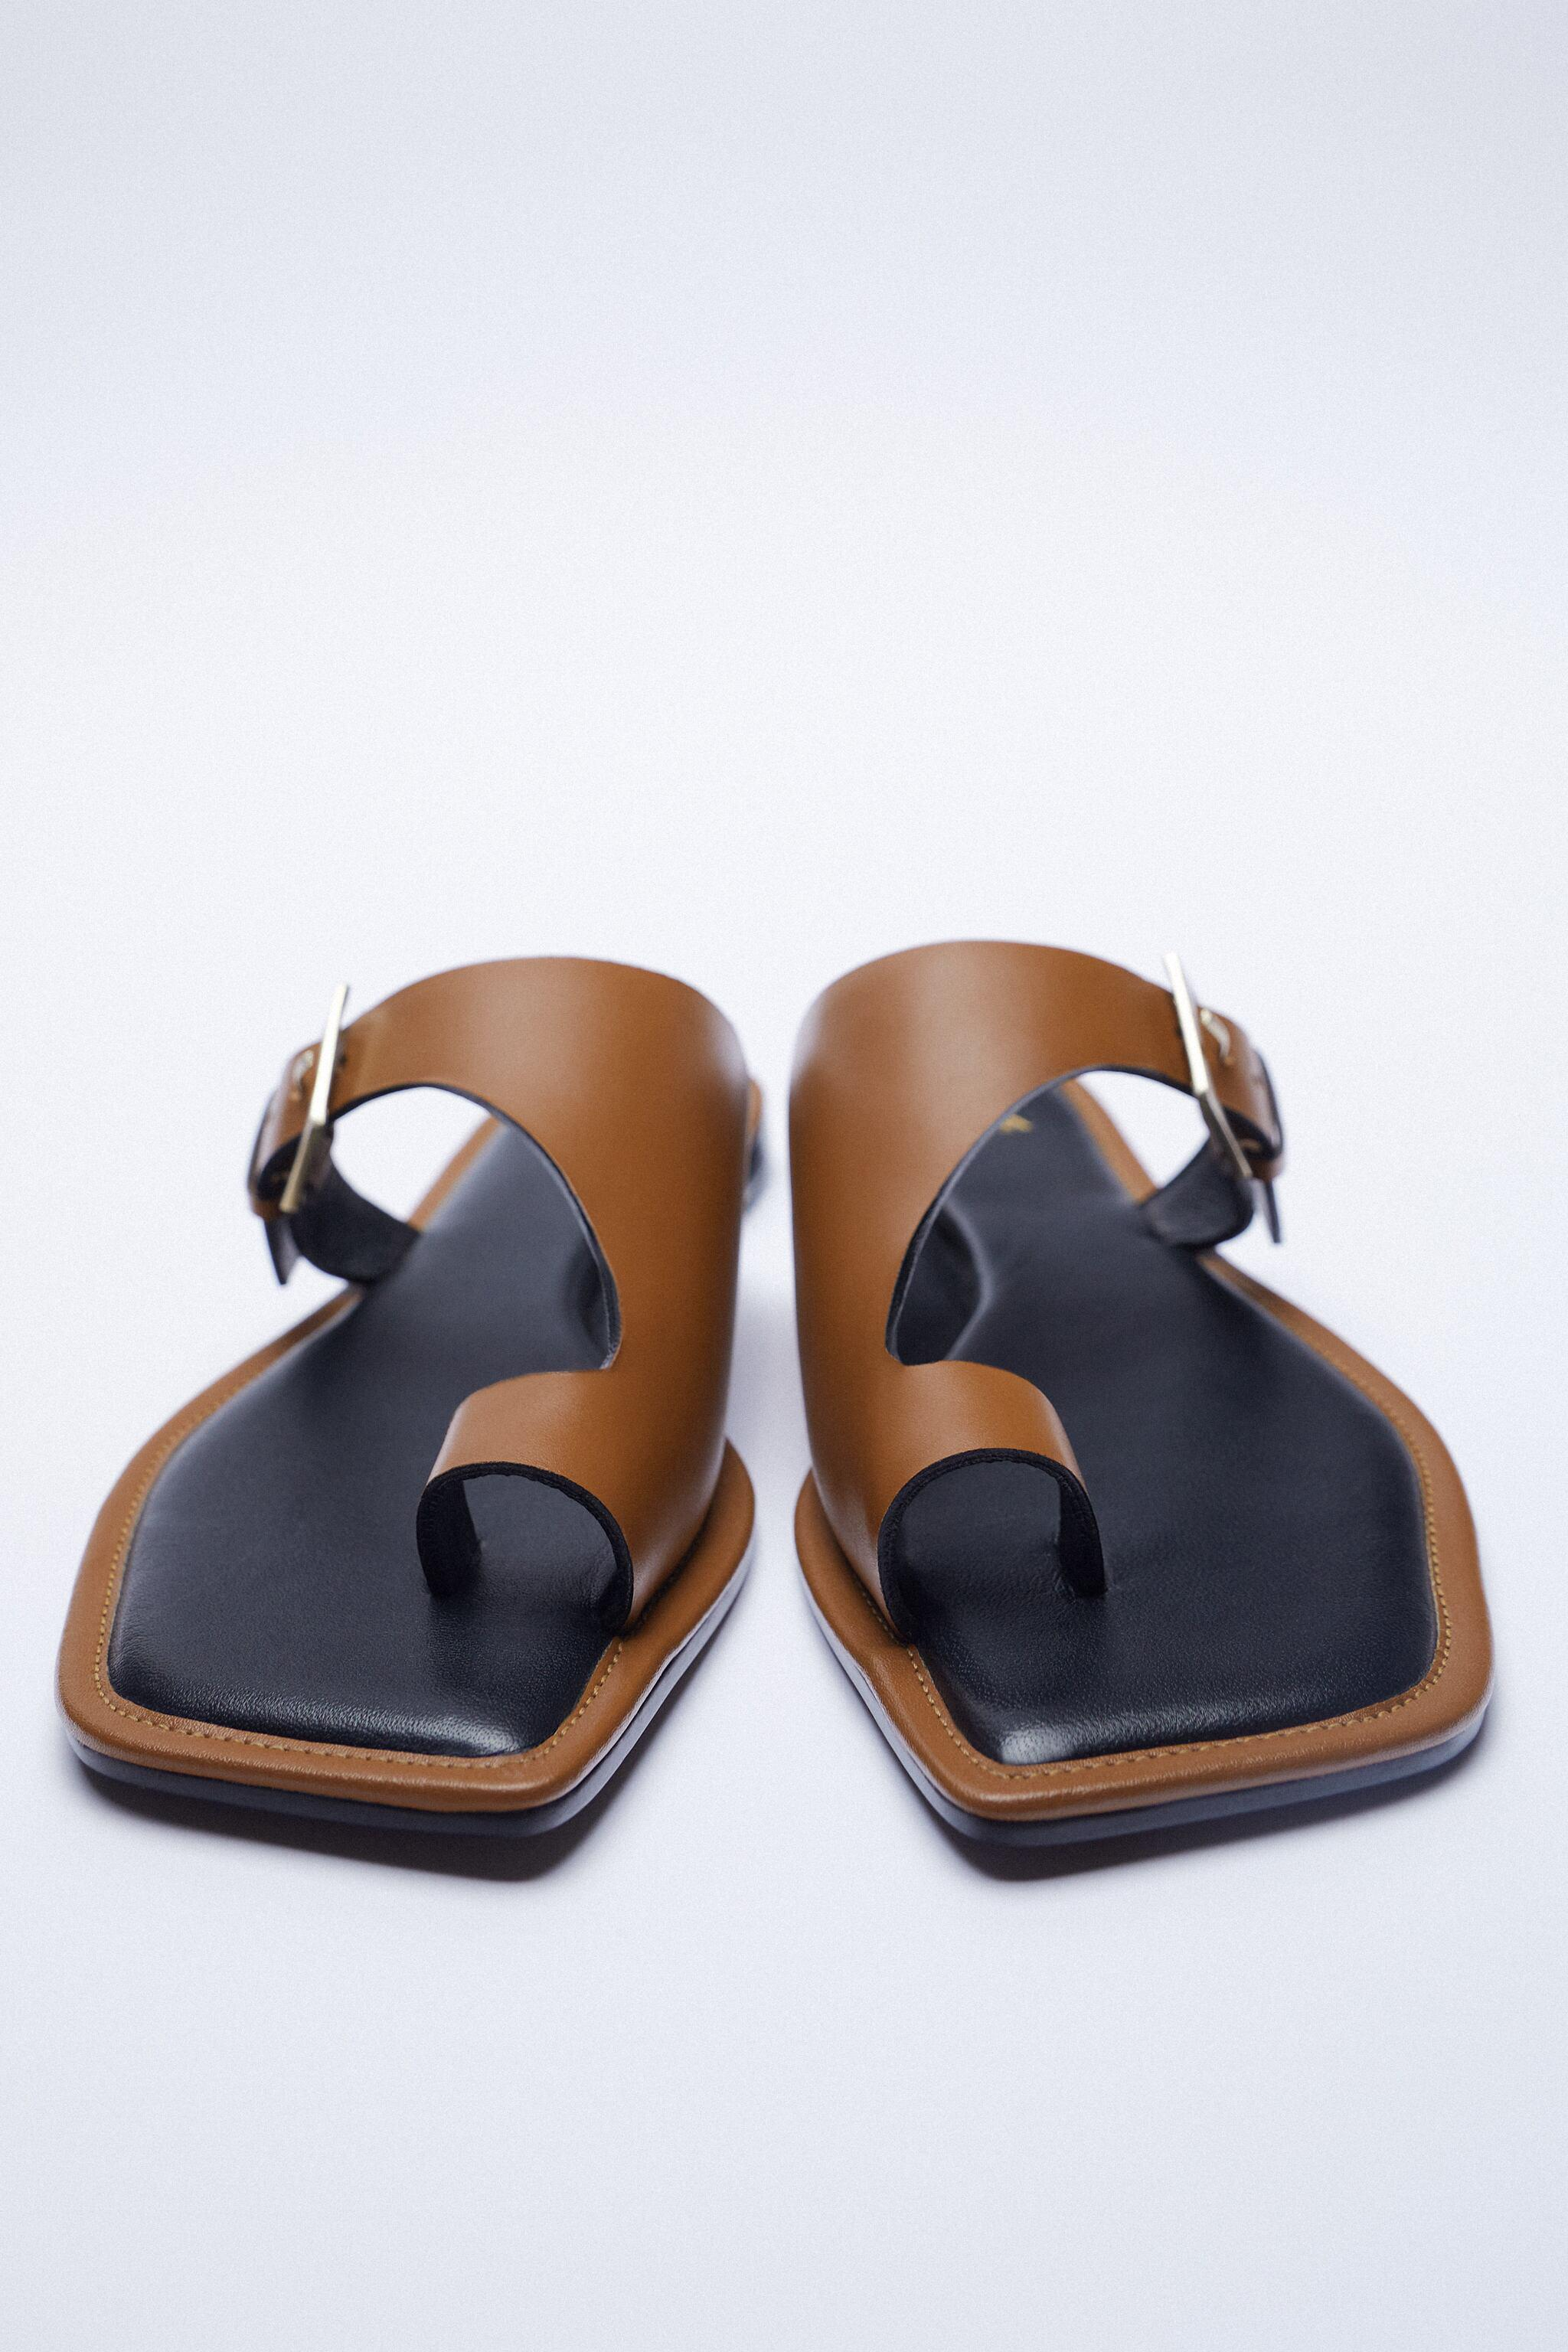 ASYMMETRICAL LEATHER SLIDE SANDALS WITH BUCKLE 7